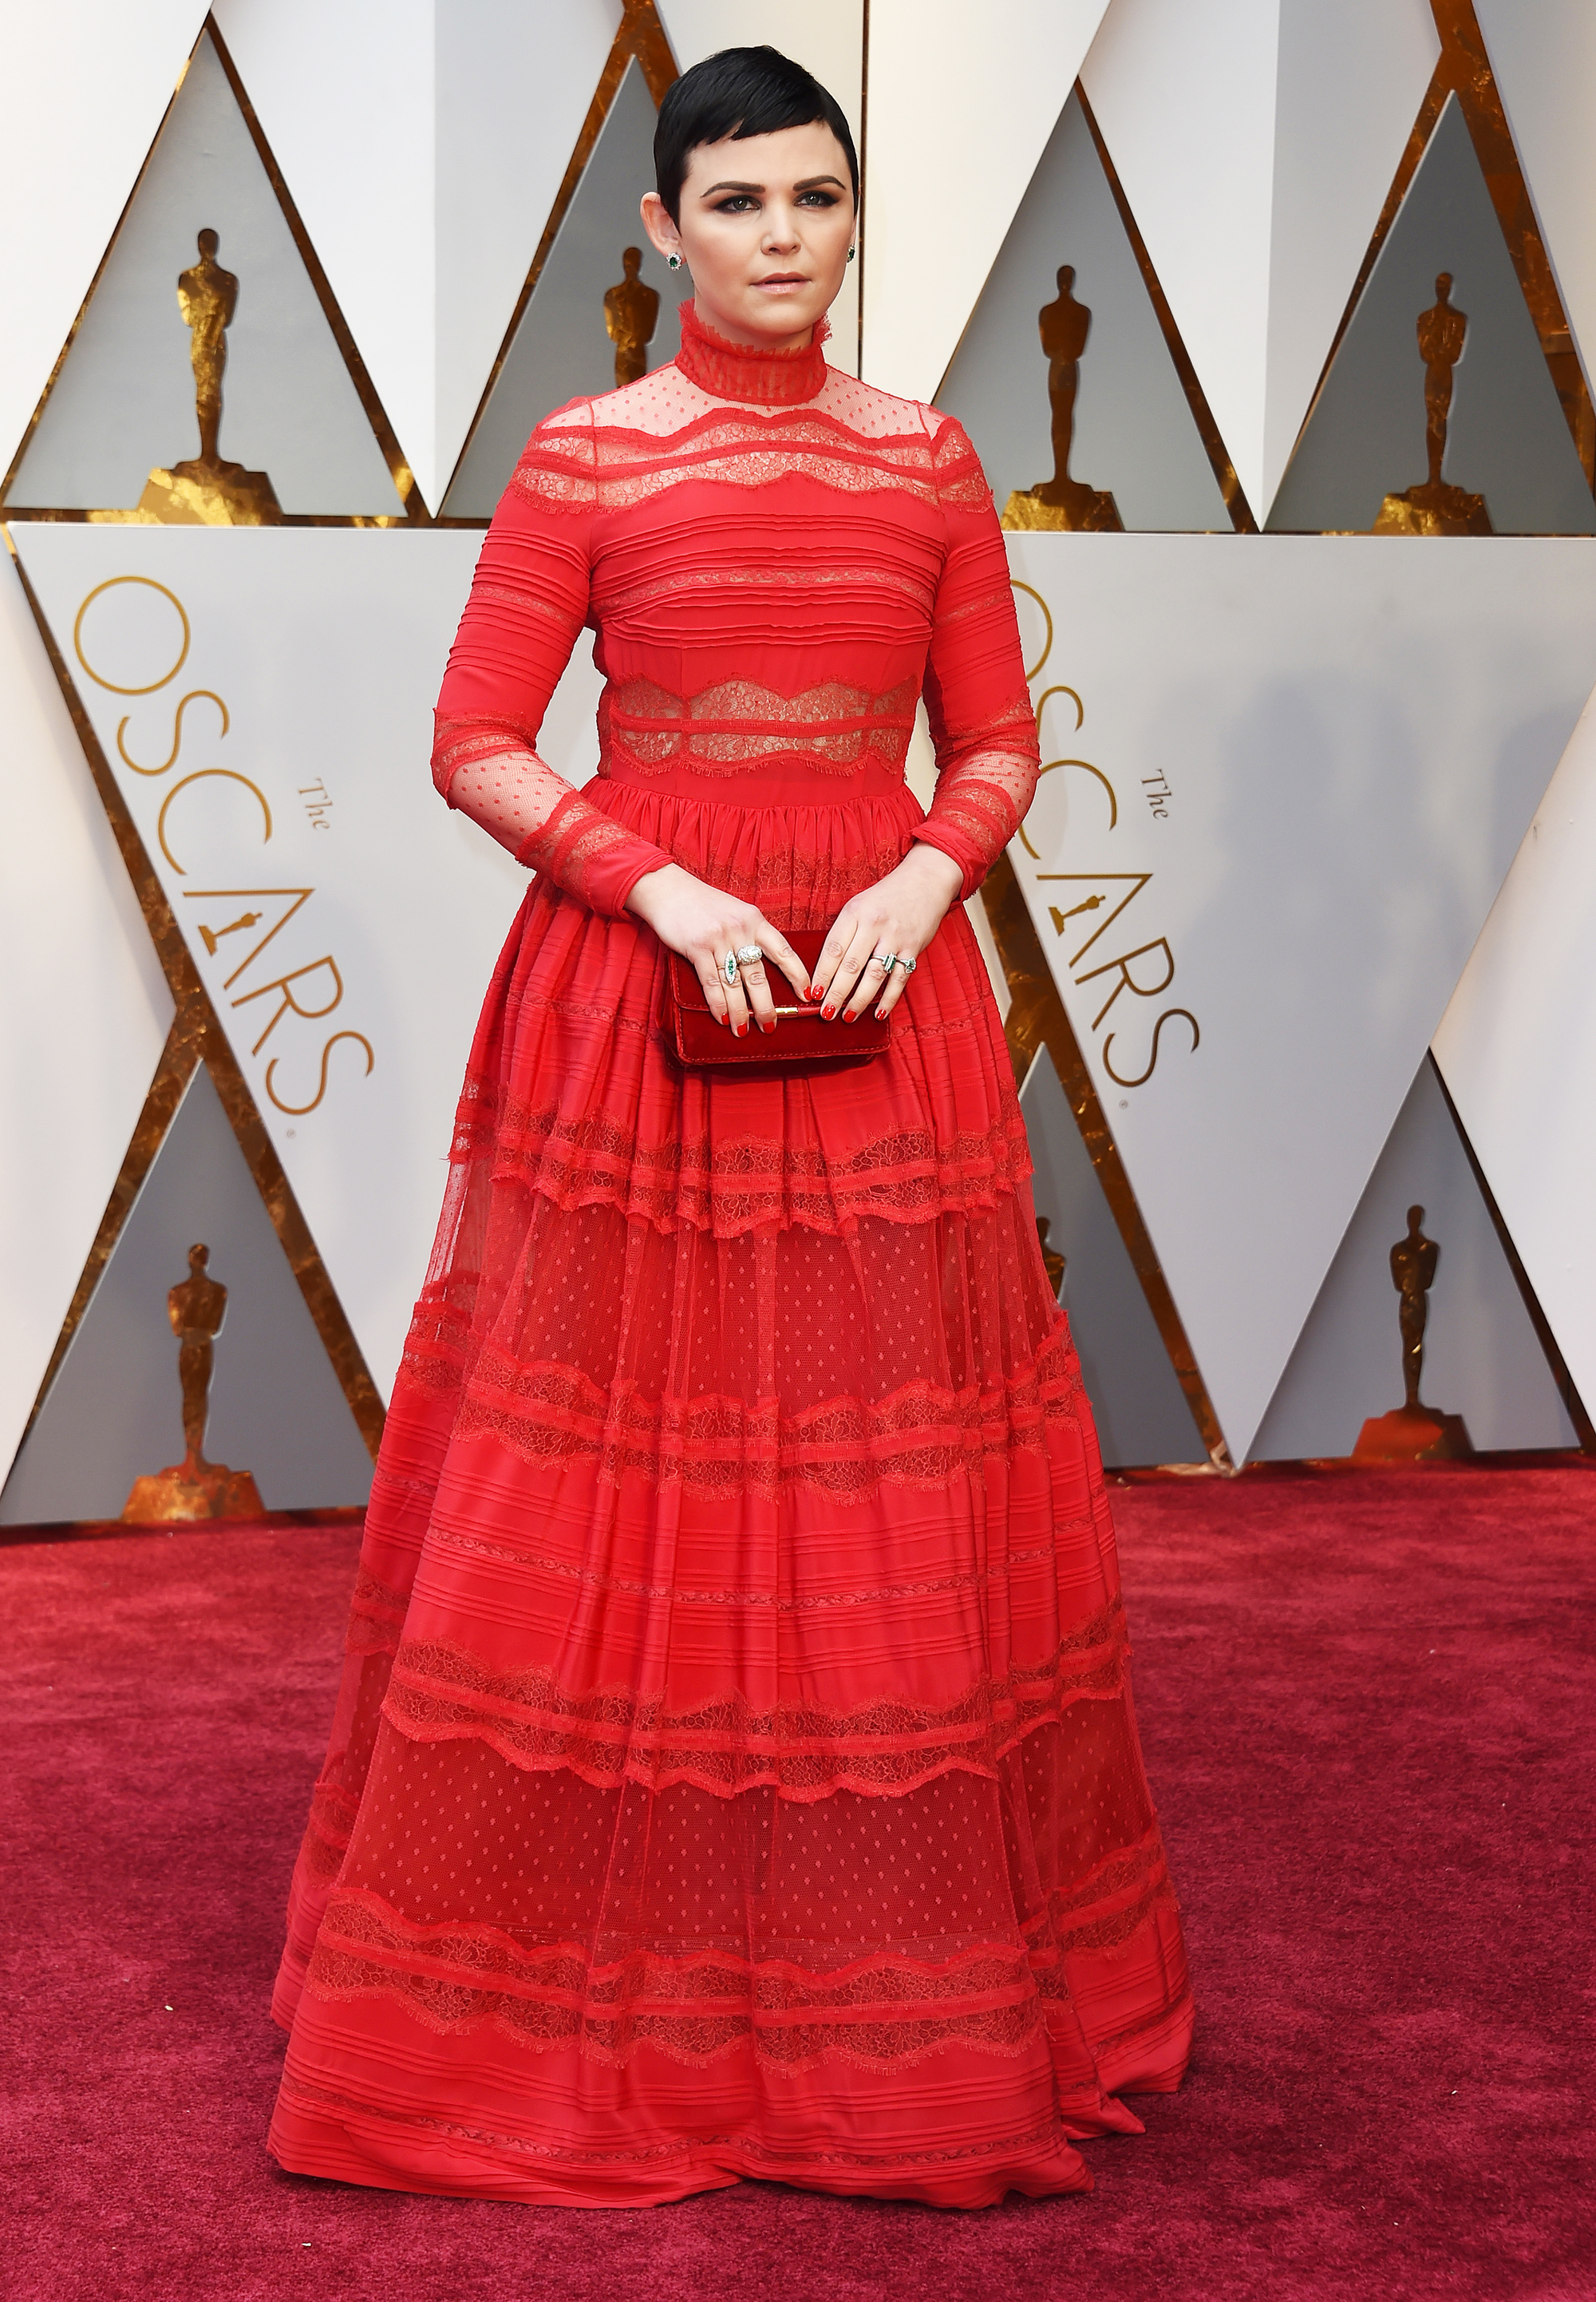 Ginnifer Goodwin on the red carpet for the 89th Oscars, on Feb. 26, 2017 in Hollywood, Calif.